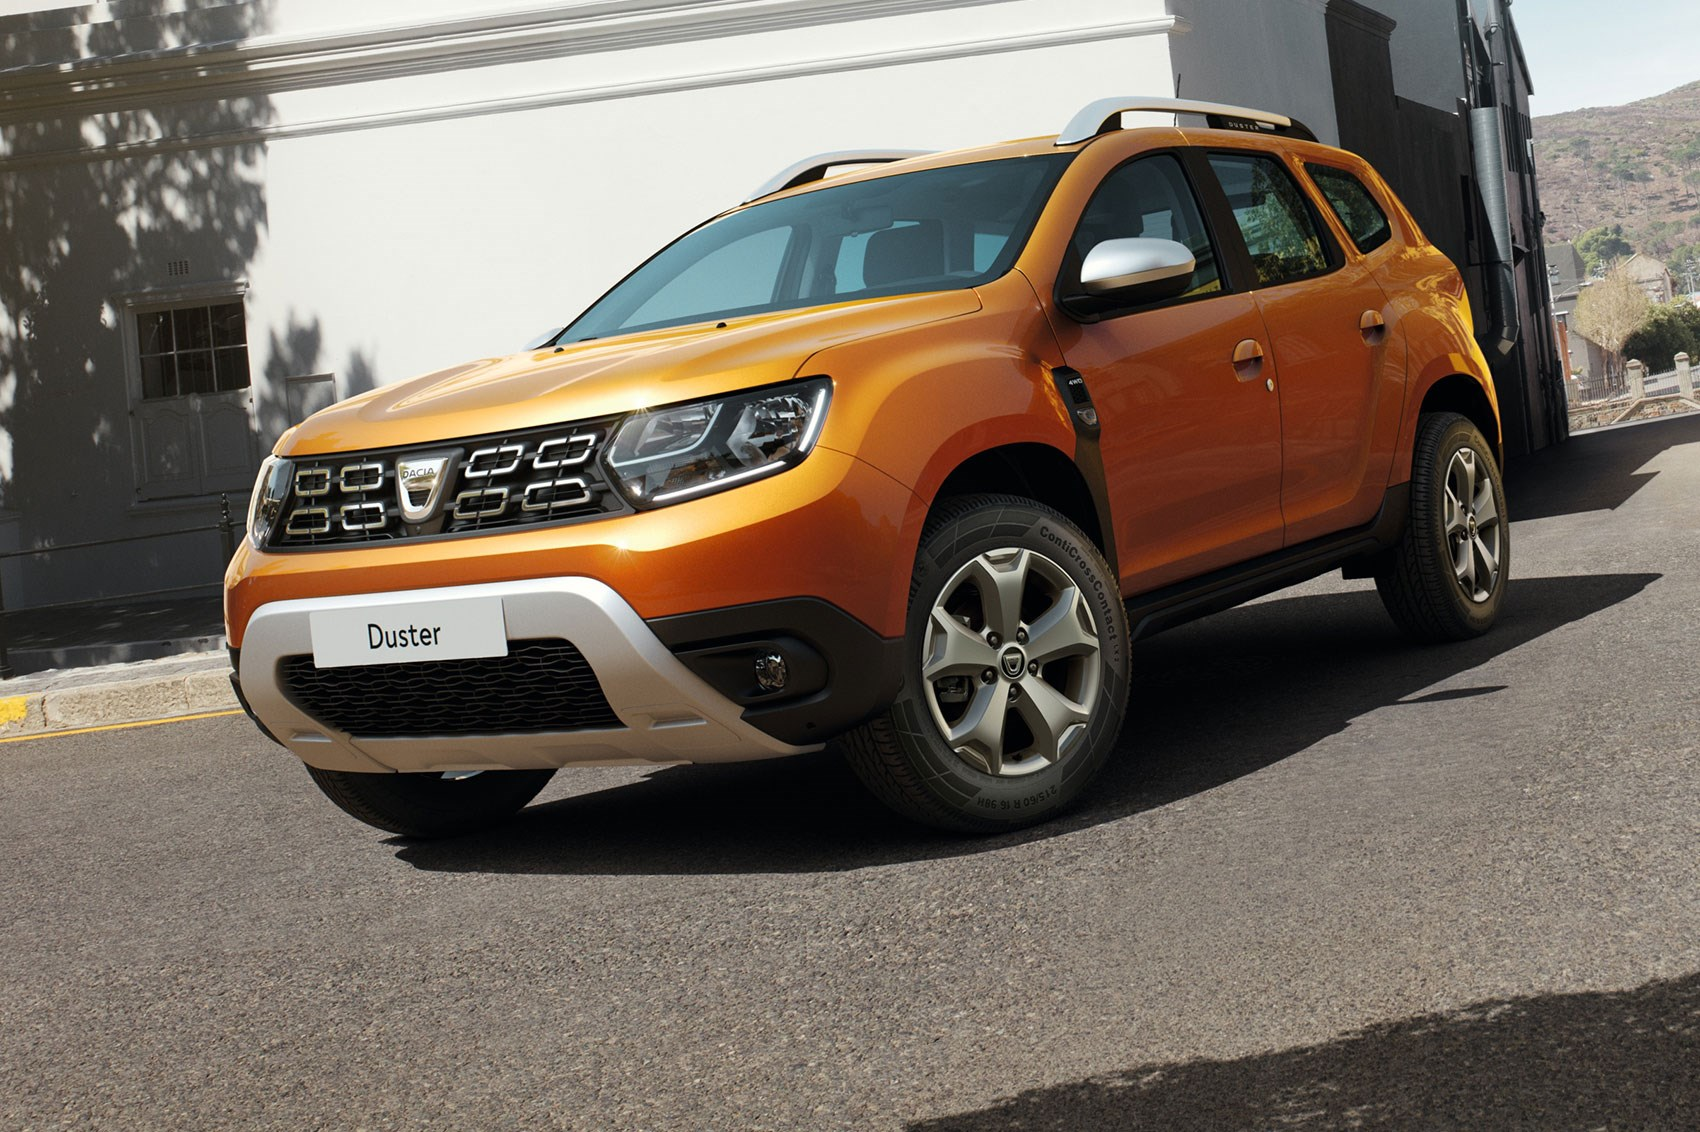 new 2018 dacia duster revealed pictures specs details car magazine. Black Bedroom Furniture Sets. Home Design Ideas